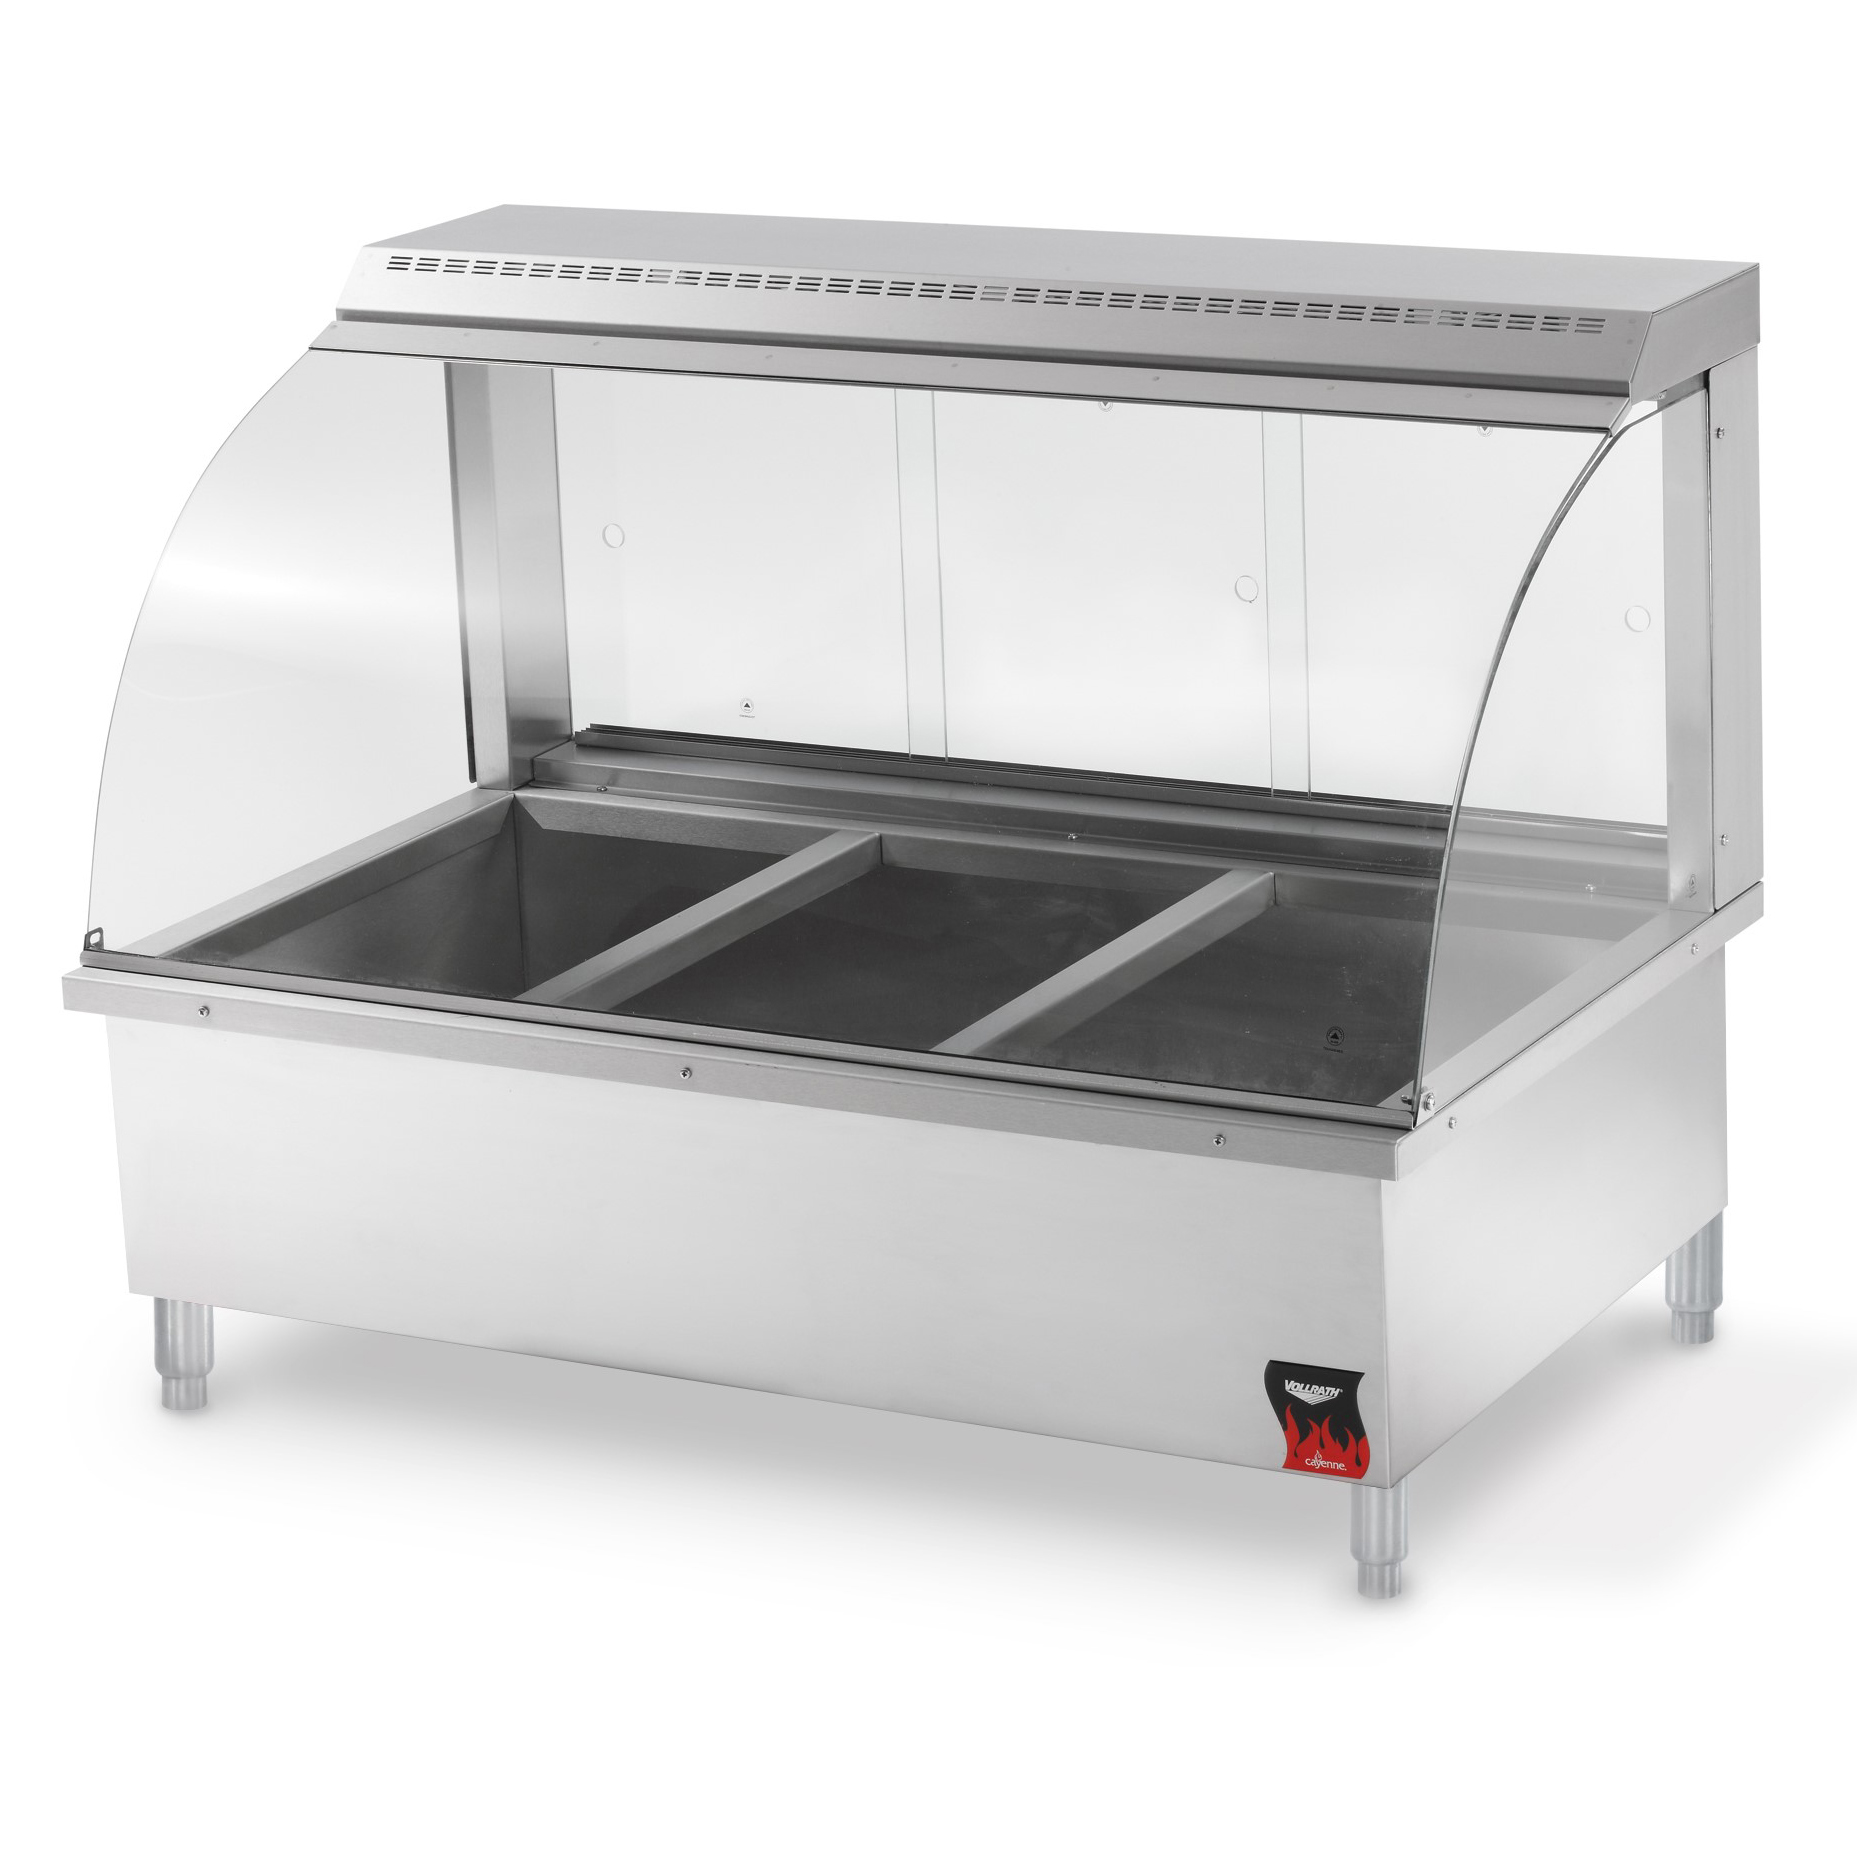 Vollrath 40732 display case, heated deli, countertop